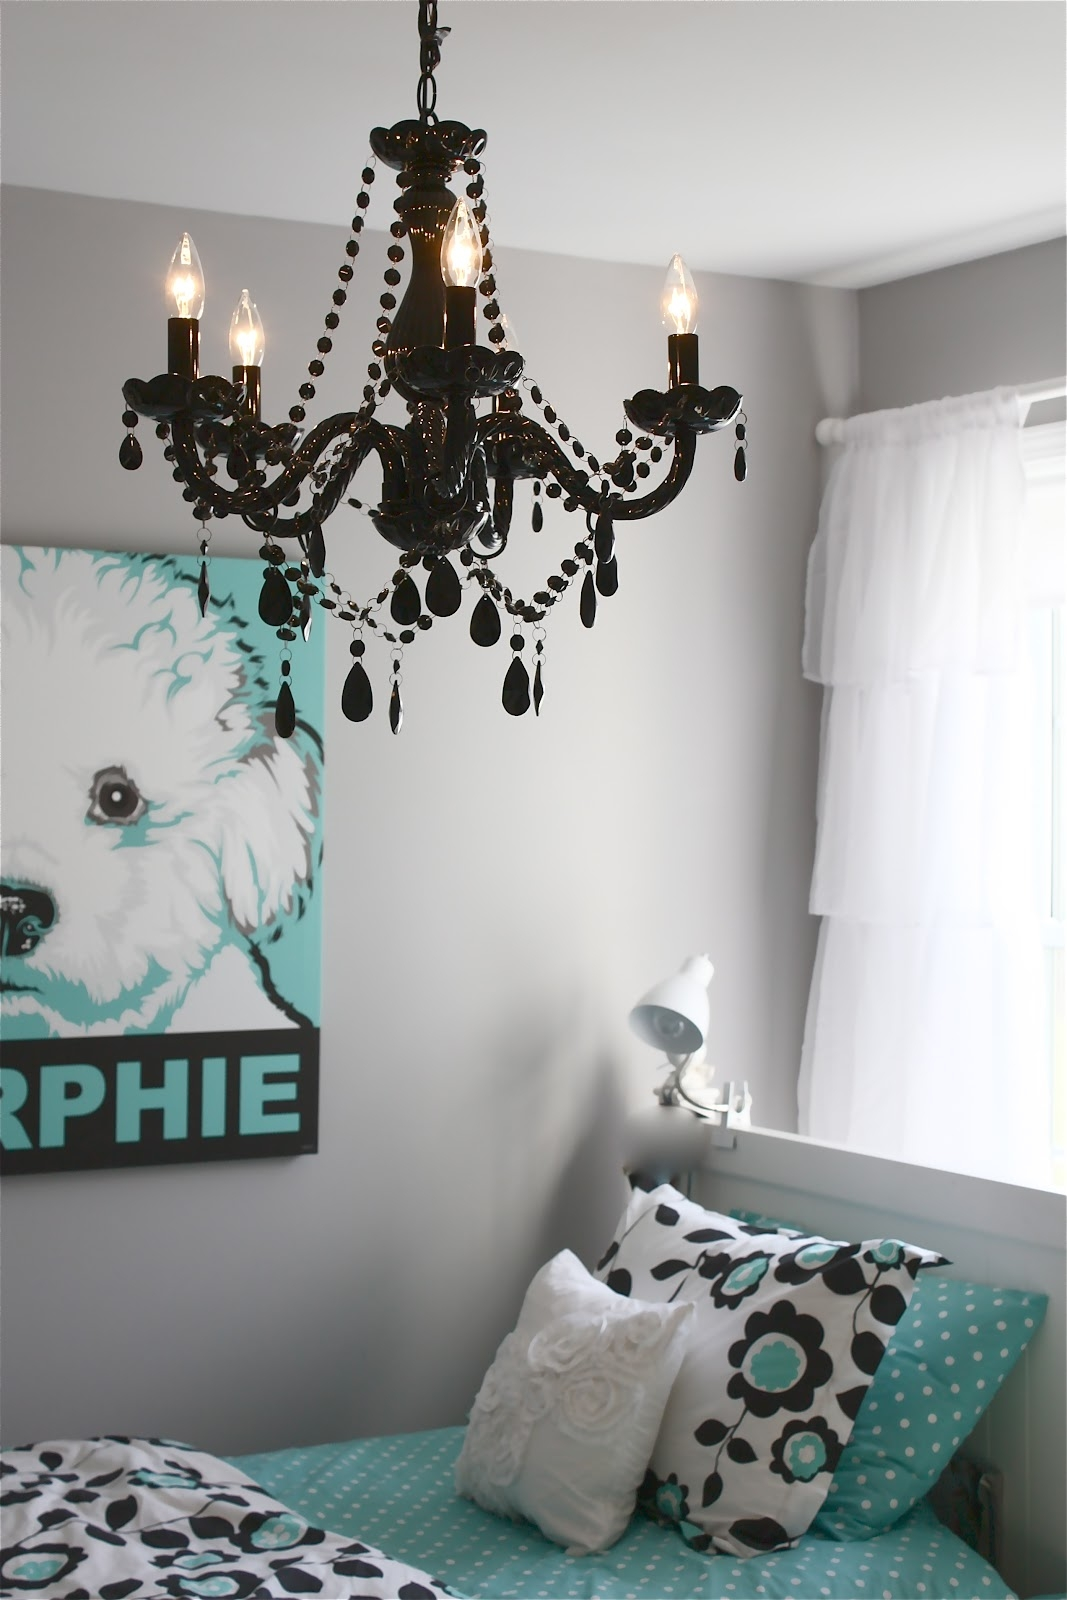 Wall Mounted Black Chandeliers Bedroom Howiezine With Regard To Wall Mounted Chandeliers (Image 22 of 25)